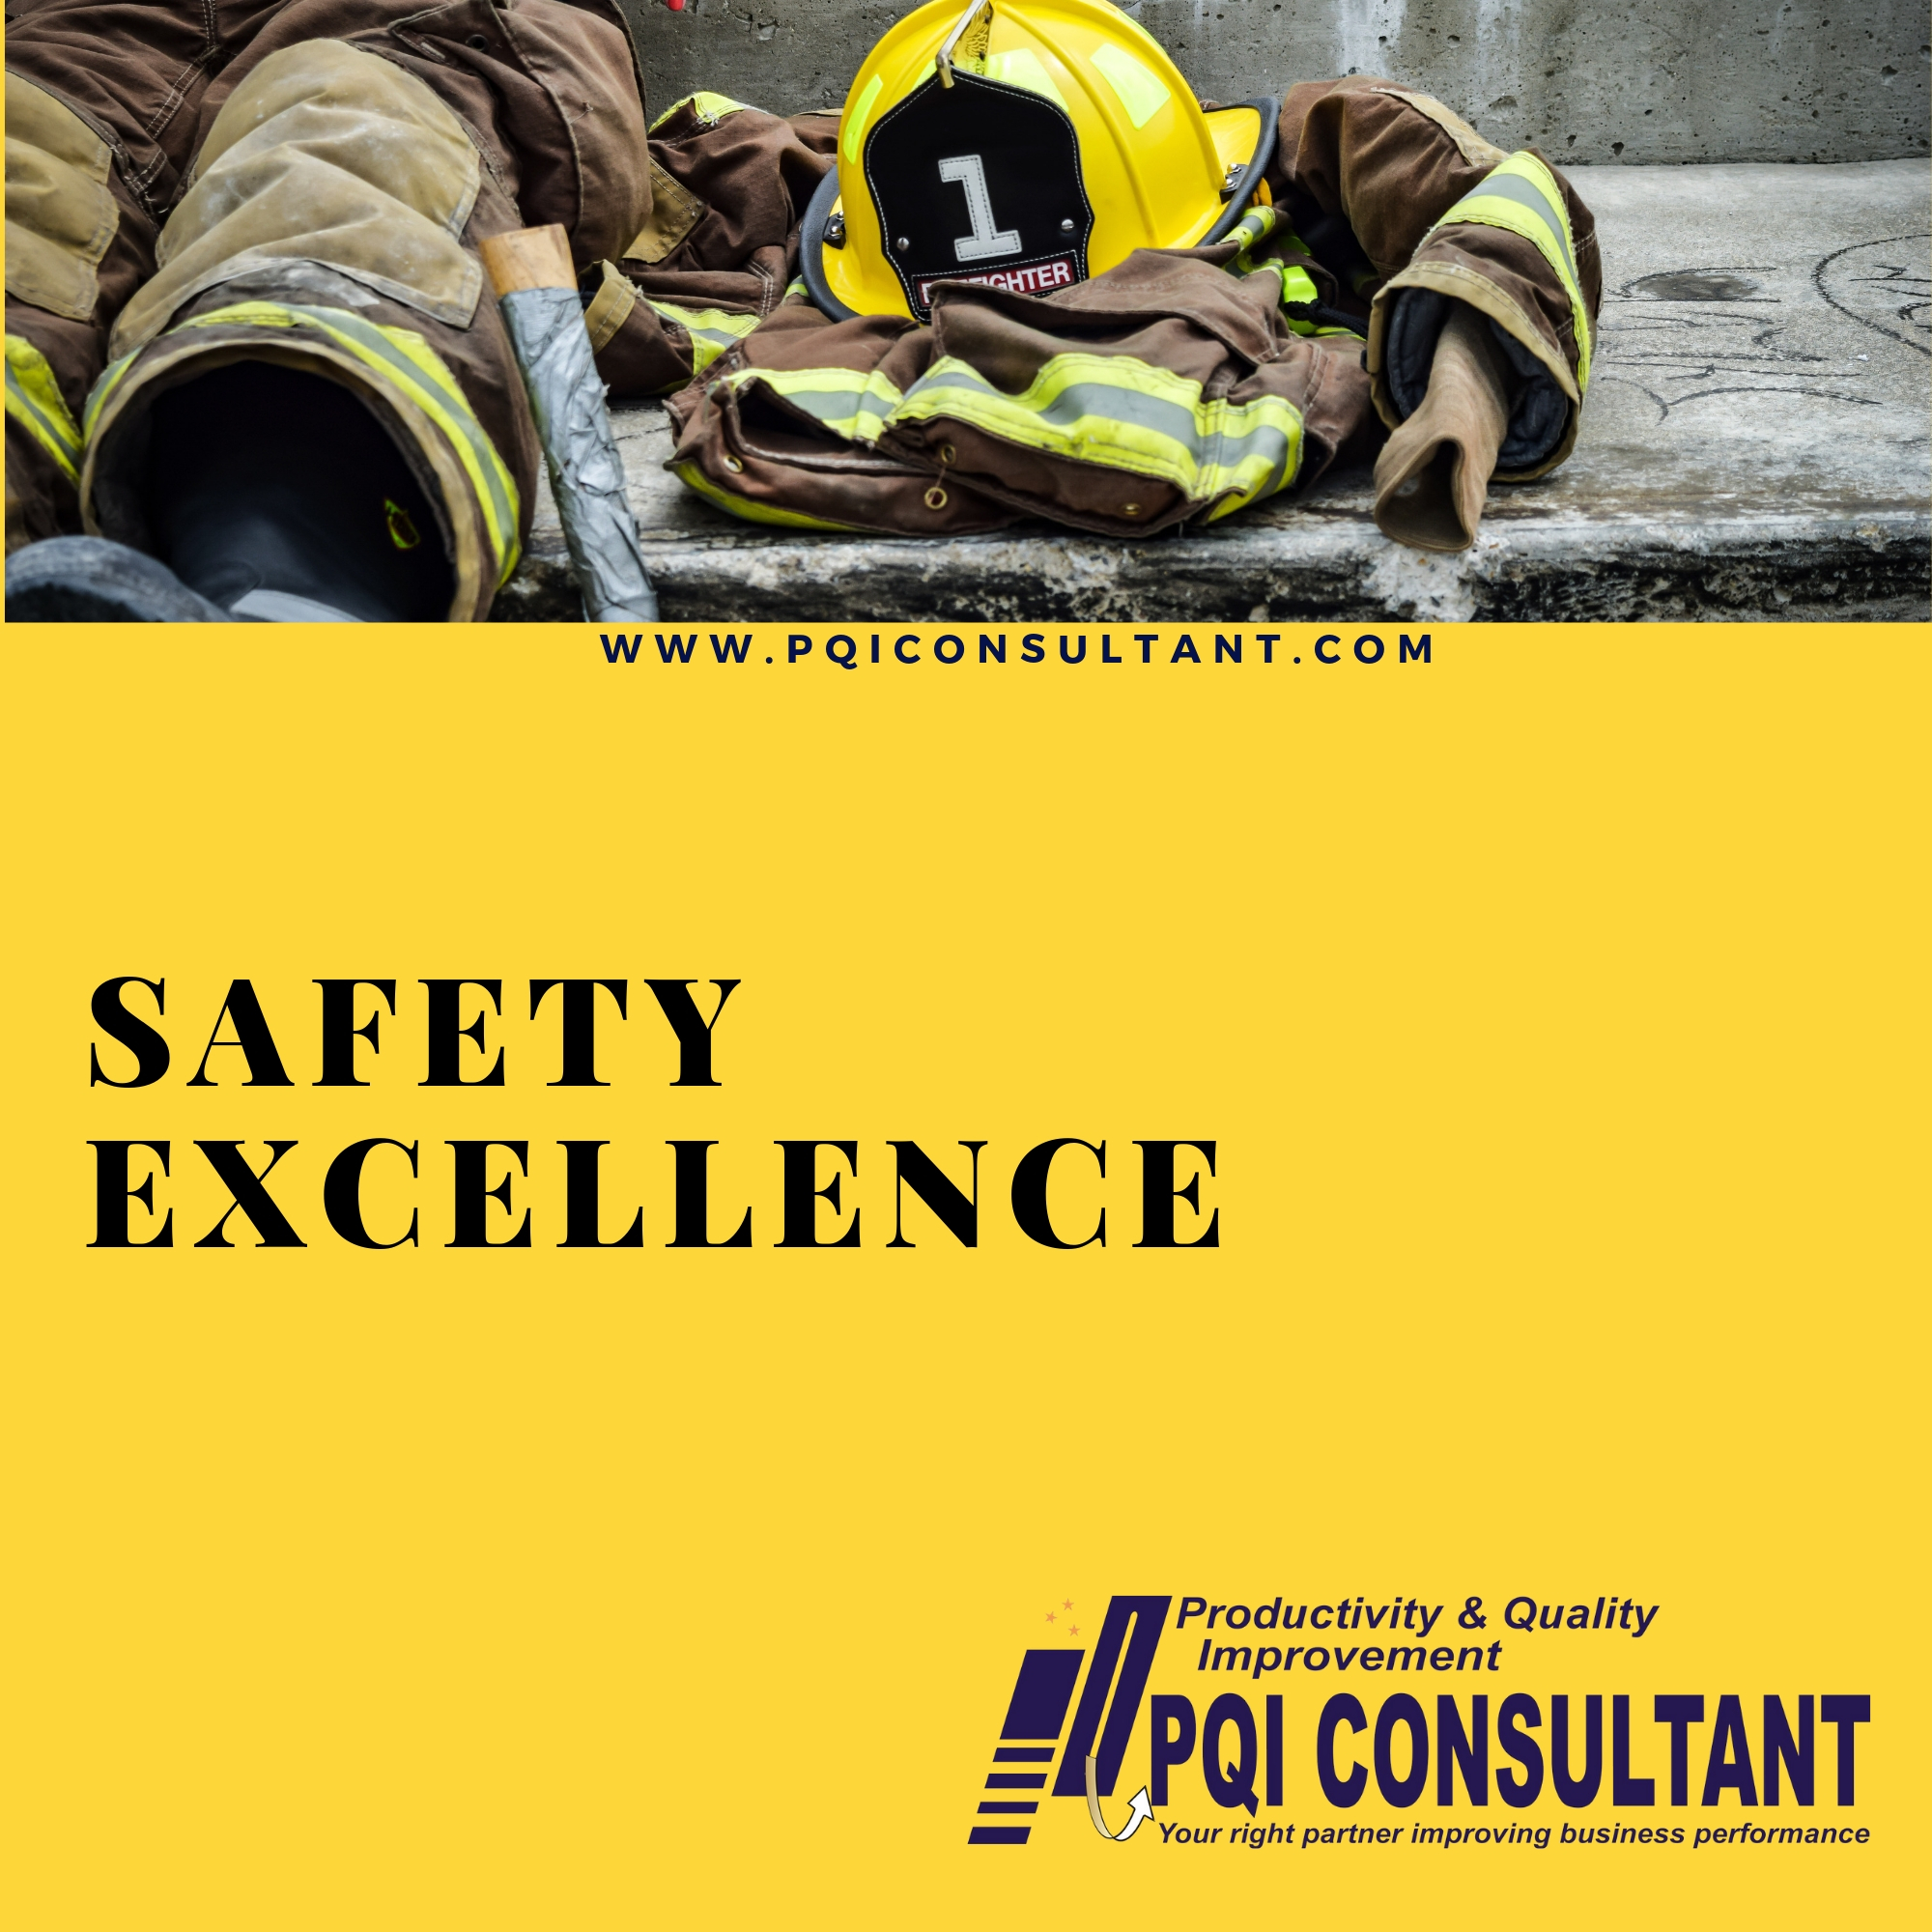 SAFETY EXCCELLENCE